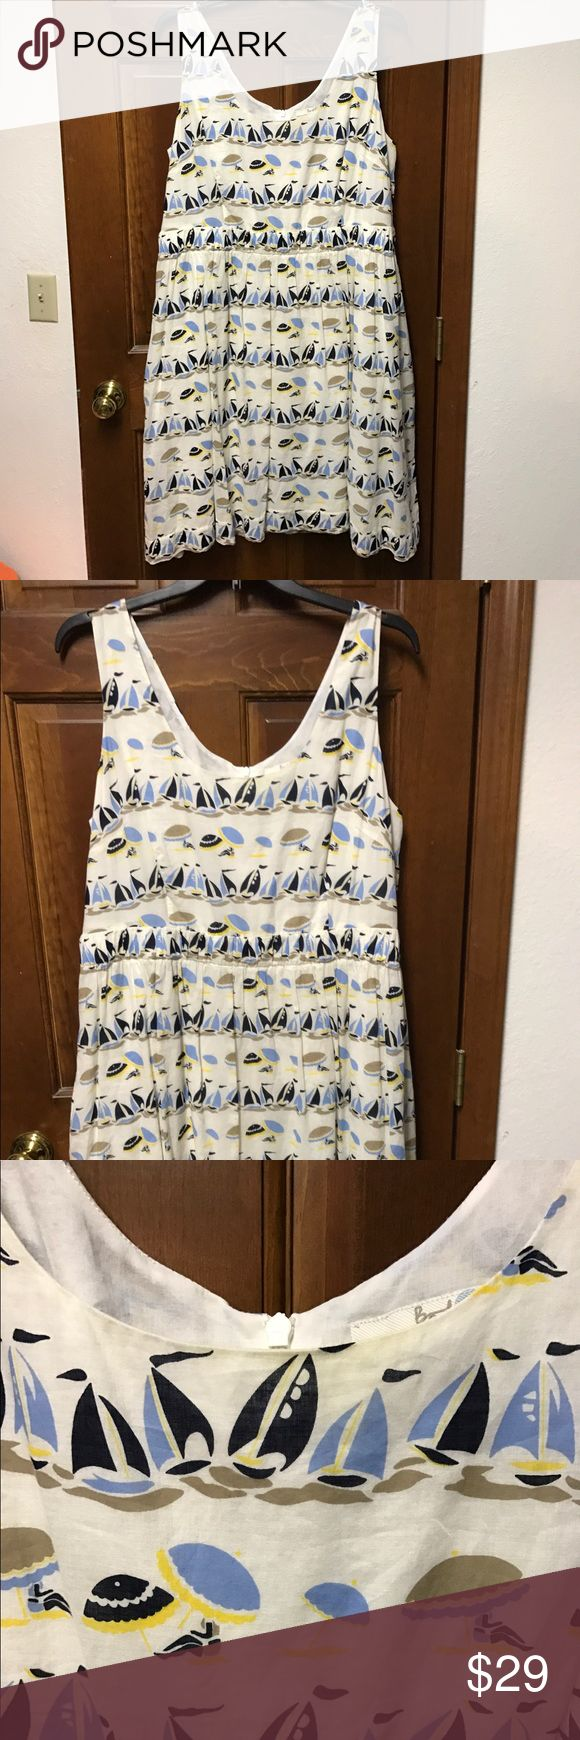 Boden dress size 18 sailboat print nautical Beautiful Boden dress in size 18. Worn one time. Excellent condition. Boden Dresses Midi